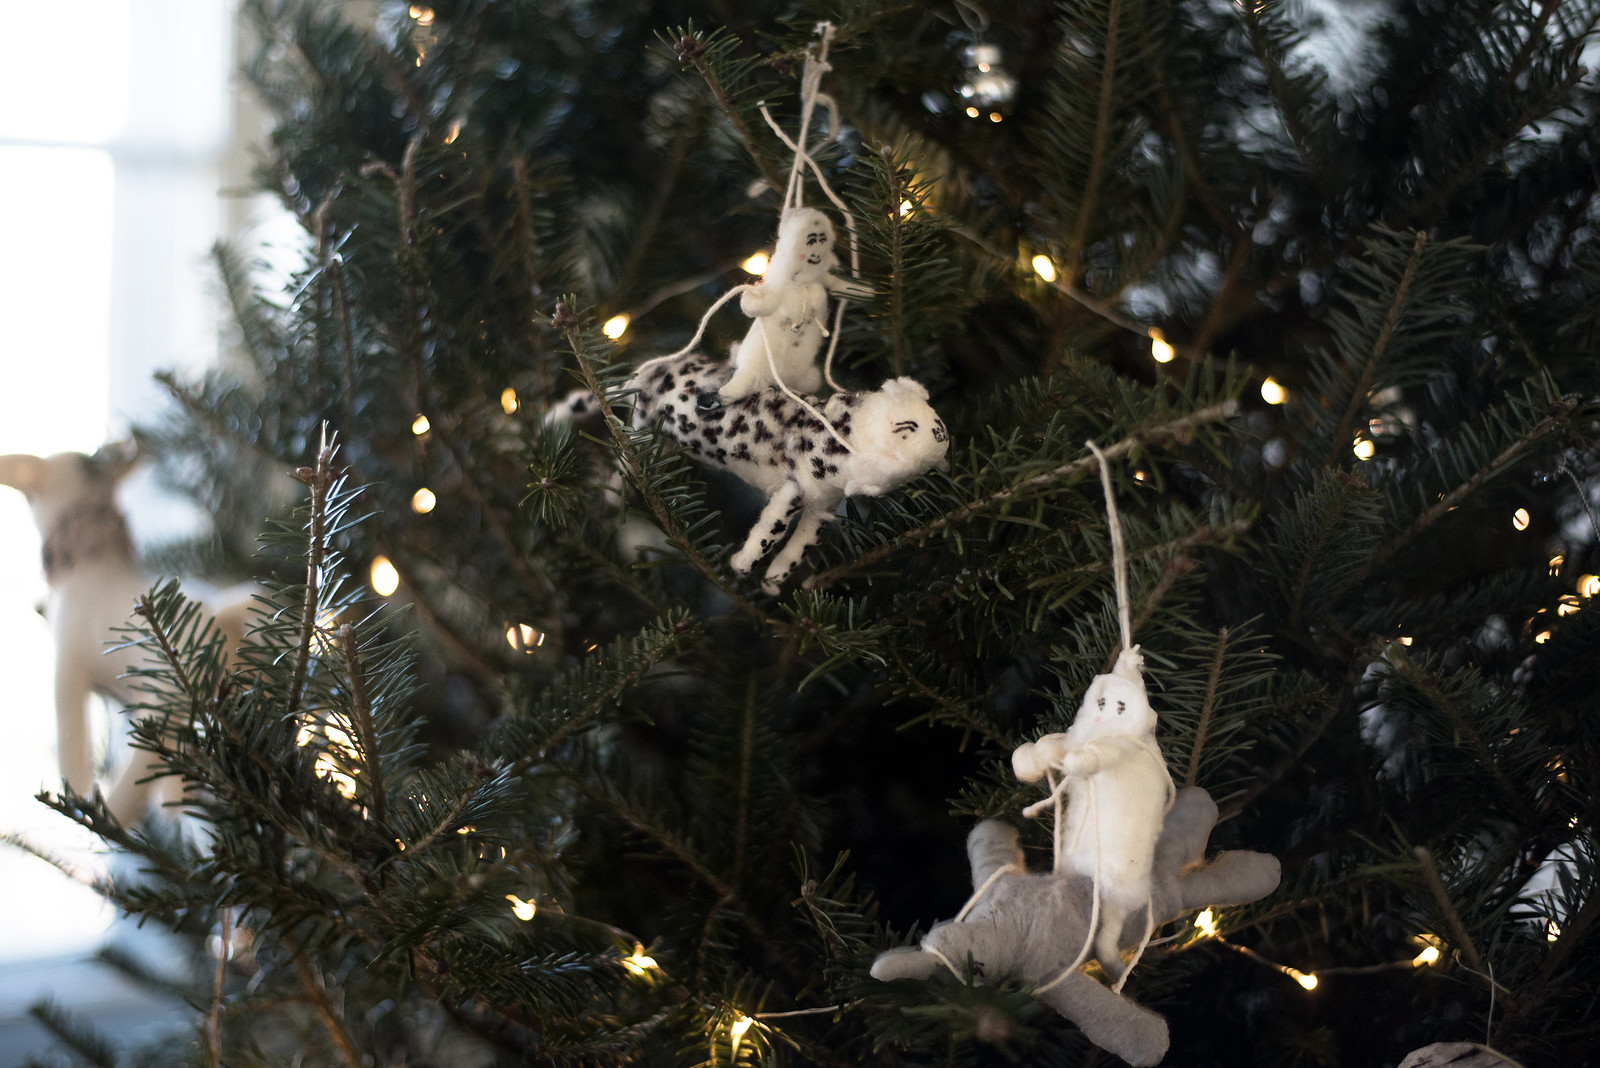 Arctic Explorer Ornaments by Vintage by Crystals for Anthropologie on juliettelaura.blogspot.com